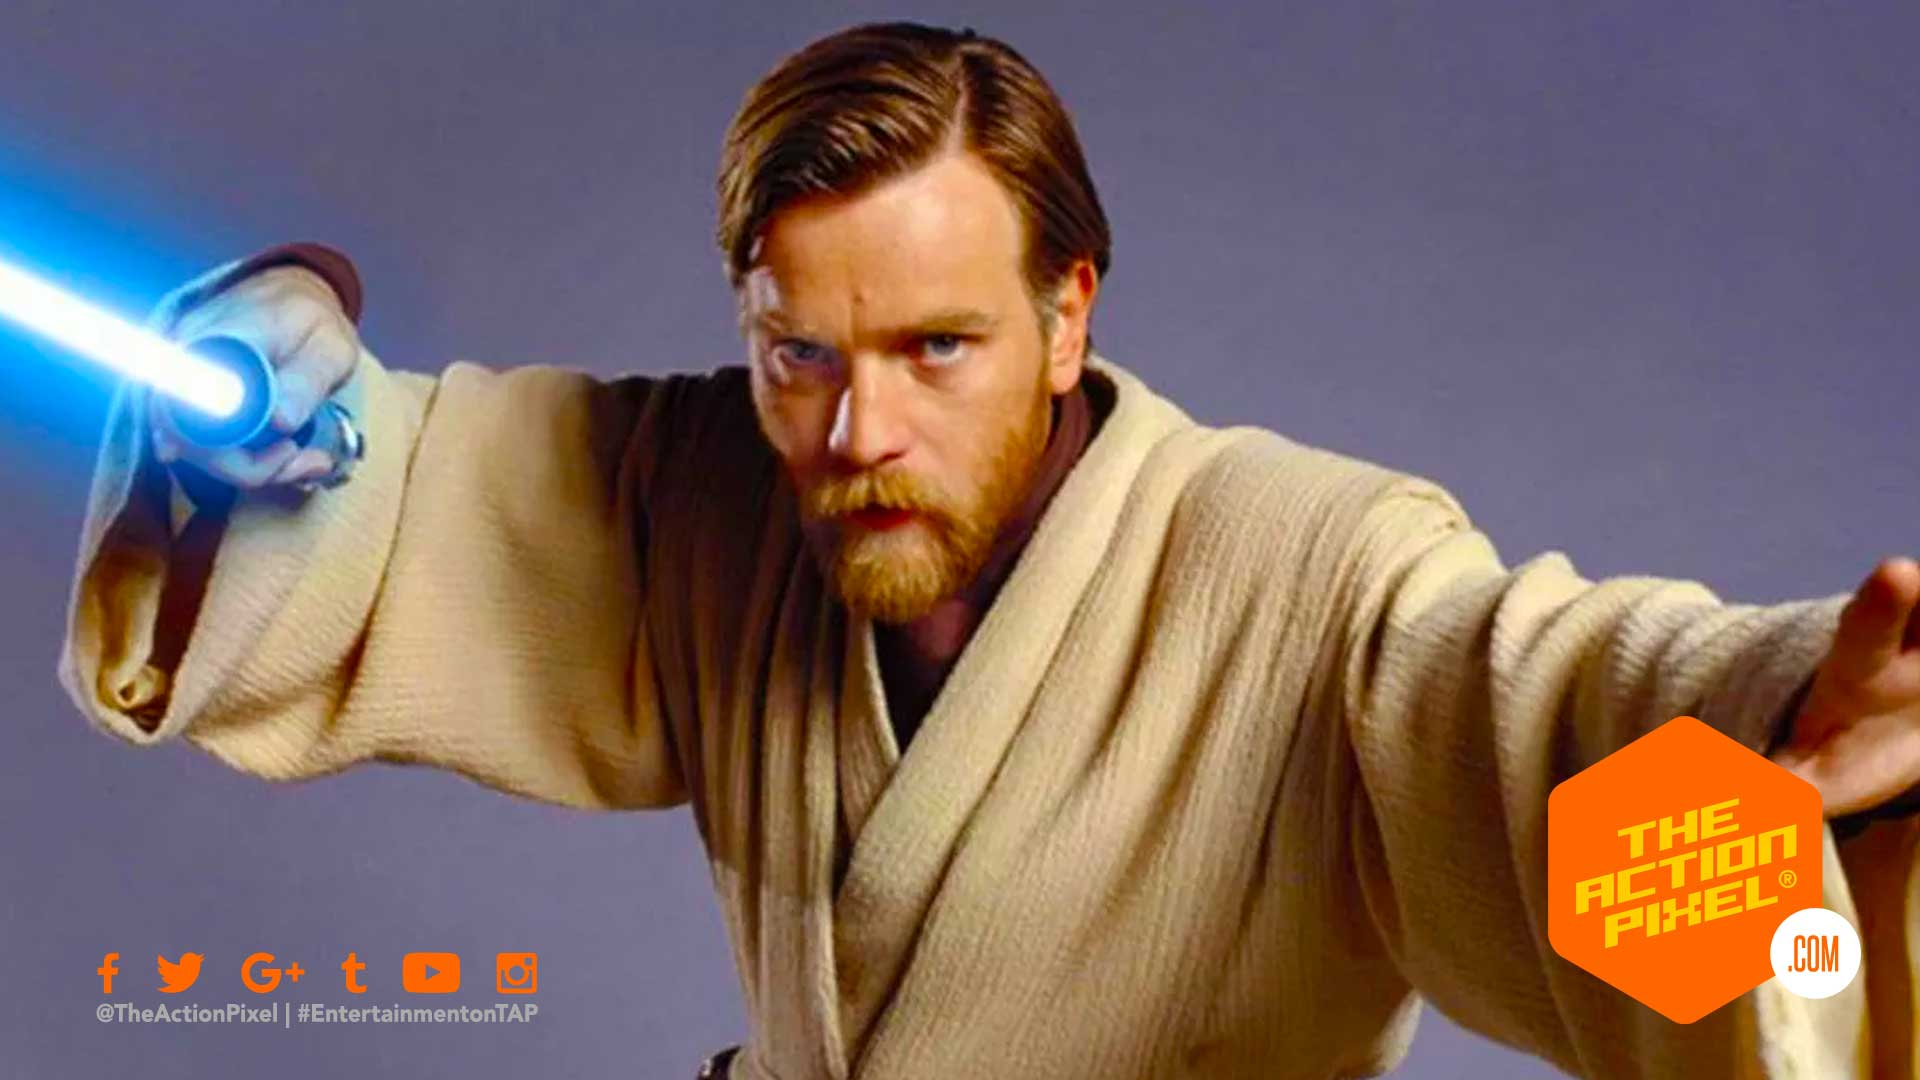 Alec Guinness , Ewan McGregor, obi-wan kenobi, lucasfilm, disney,entertainment on tap,the action pixel, featured, disney+, darth vader, entertainment on tap,